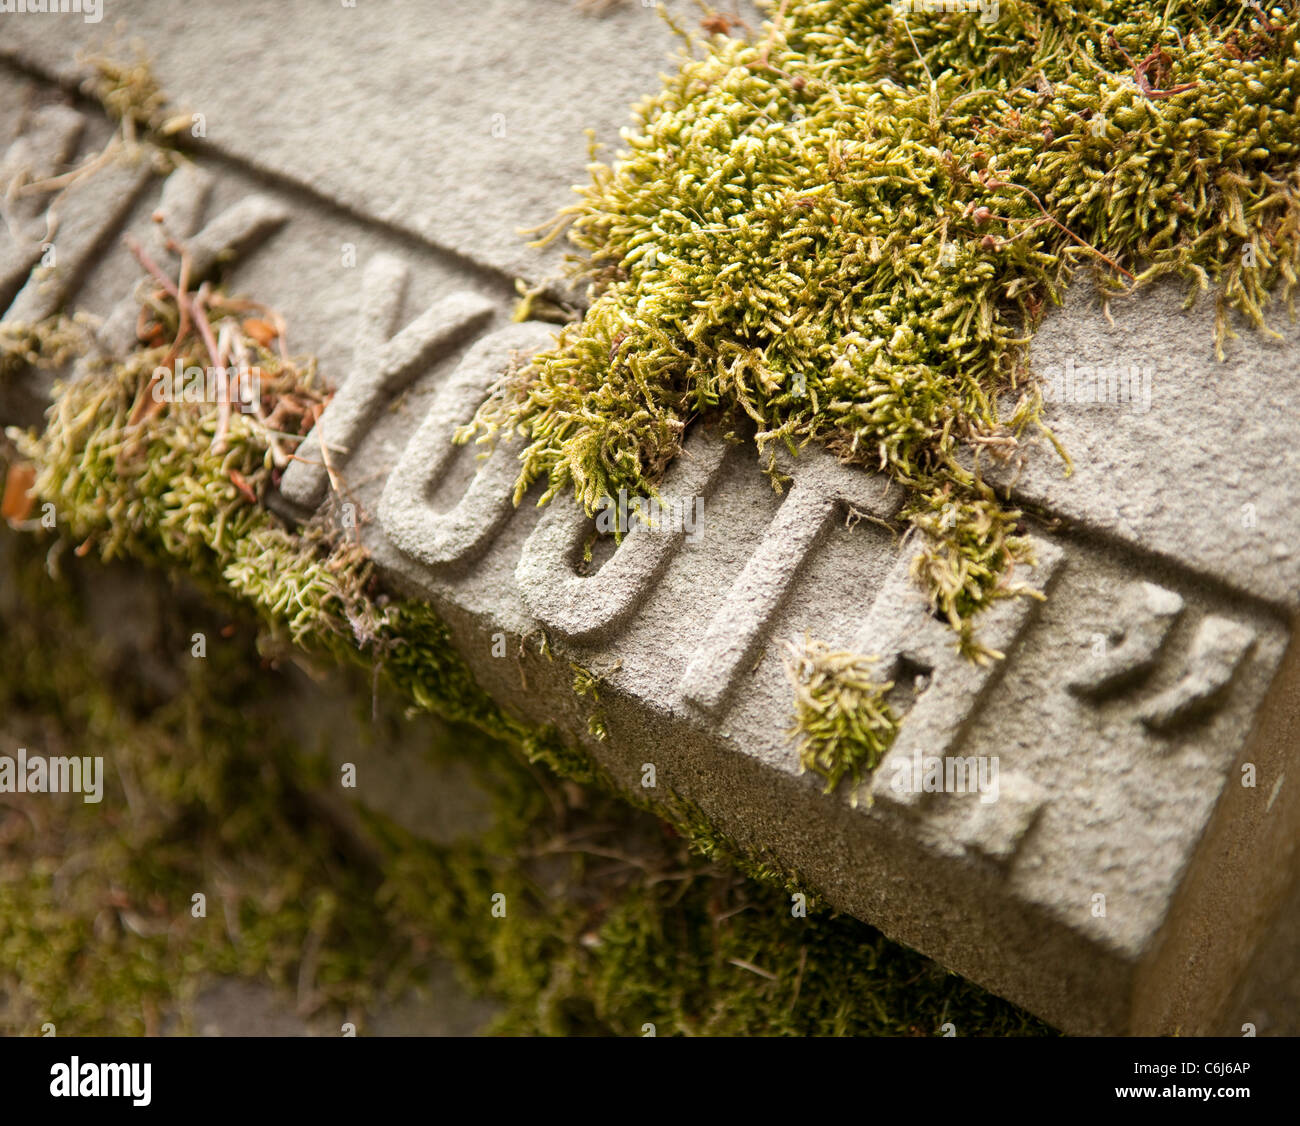 Gravestone featuring the word 'Youth: covered in moss - Stock Image